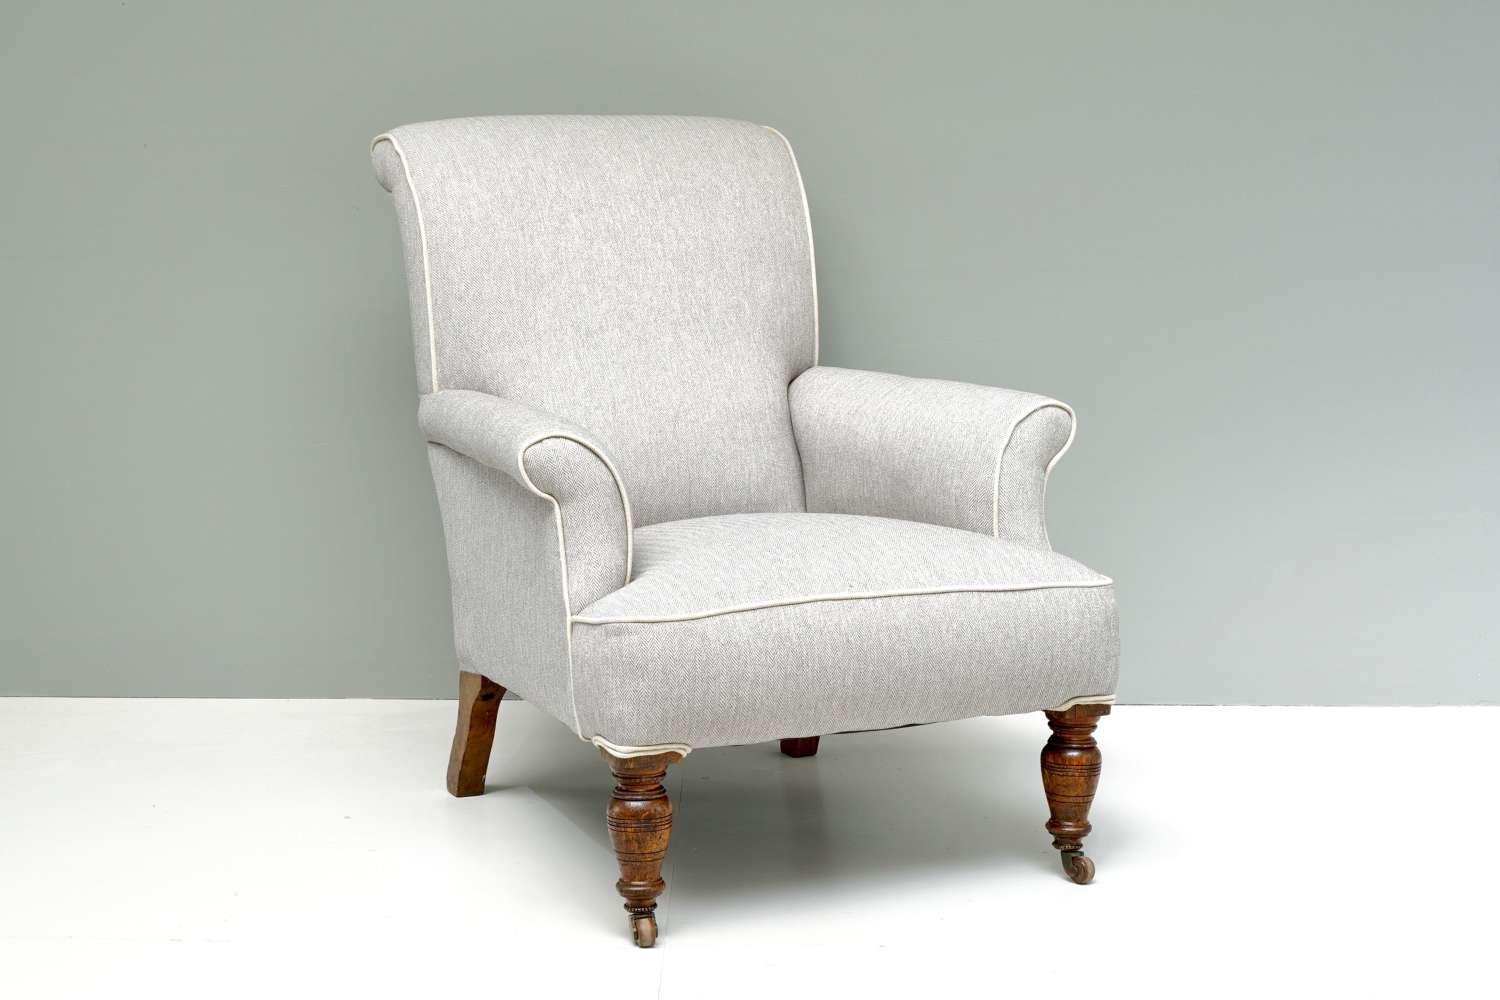 English country house reupholstered chair